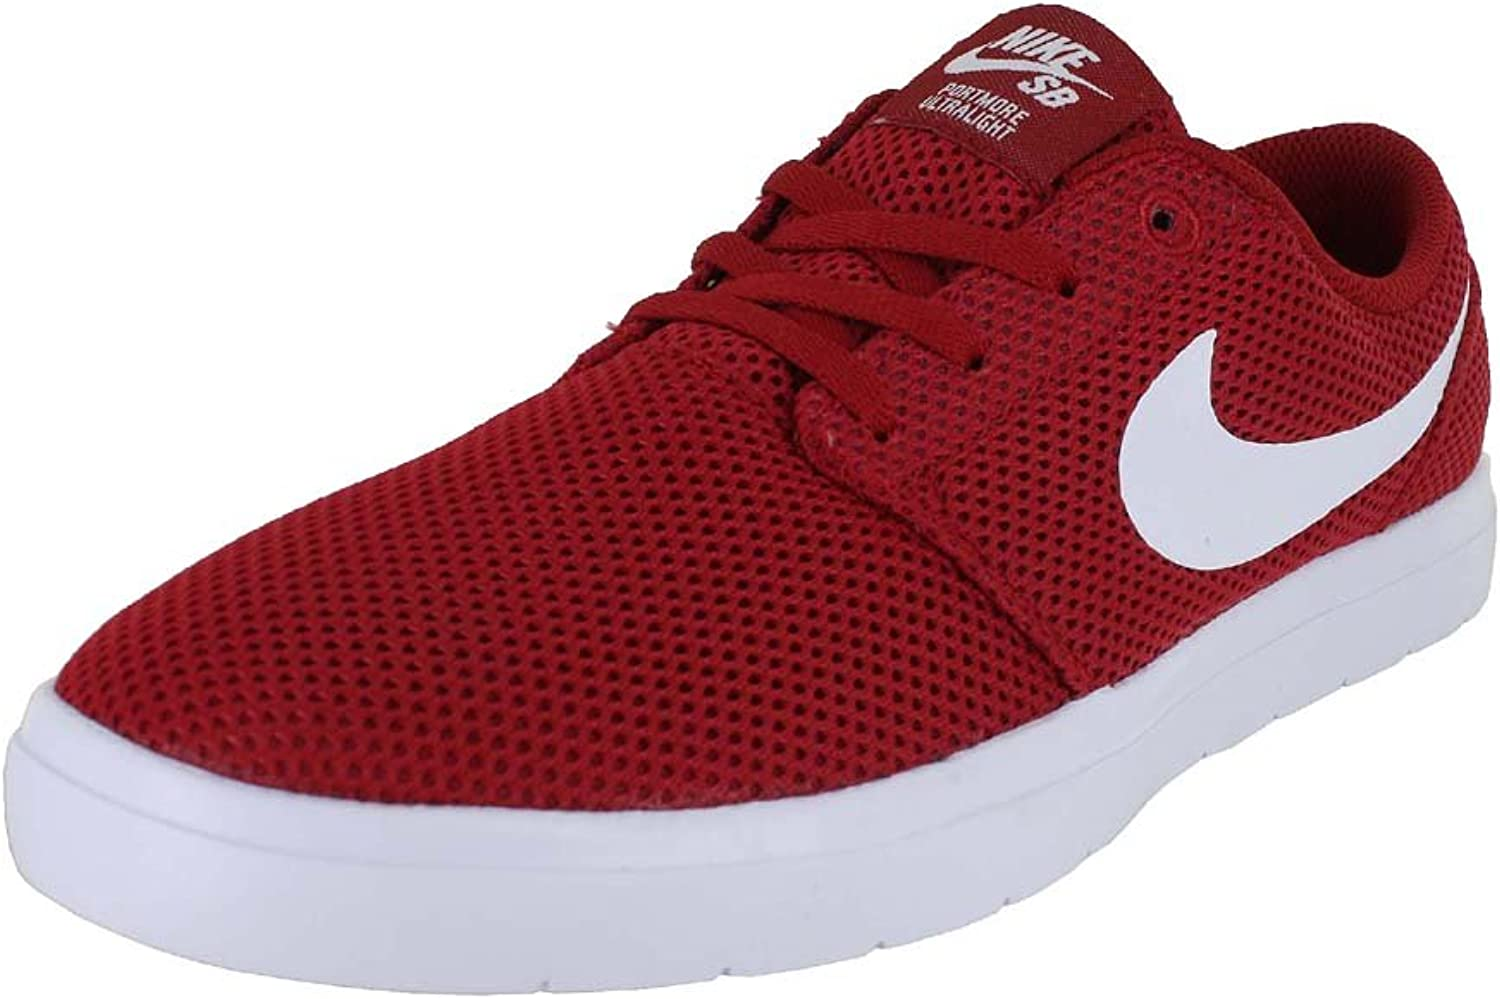 Nike Mens SB Portmore II Ultralight shoes